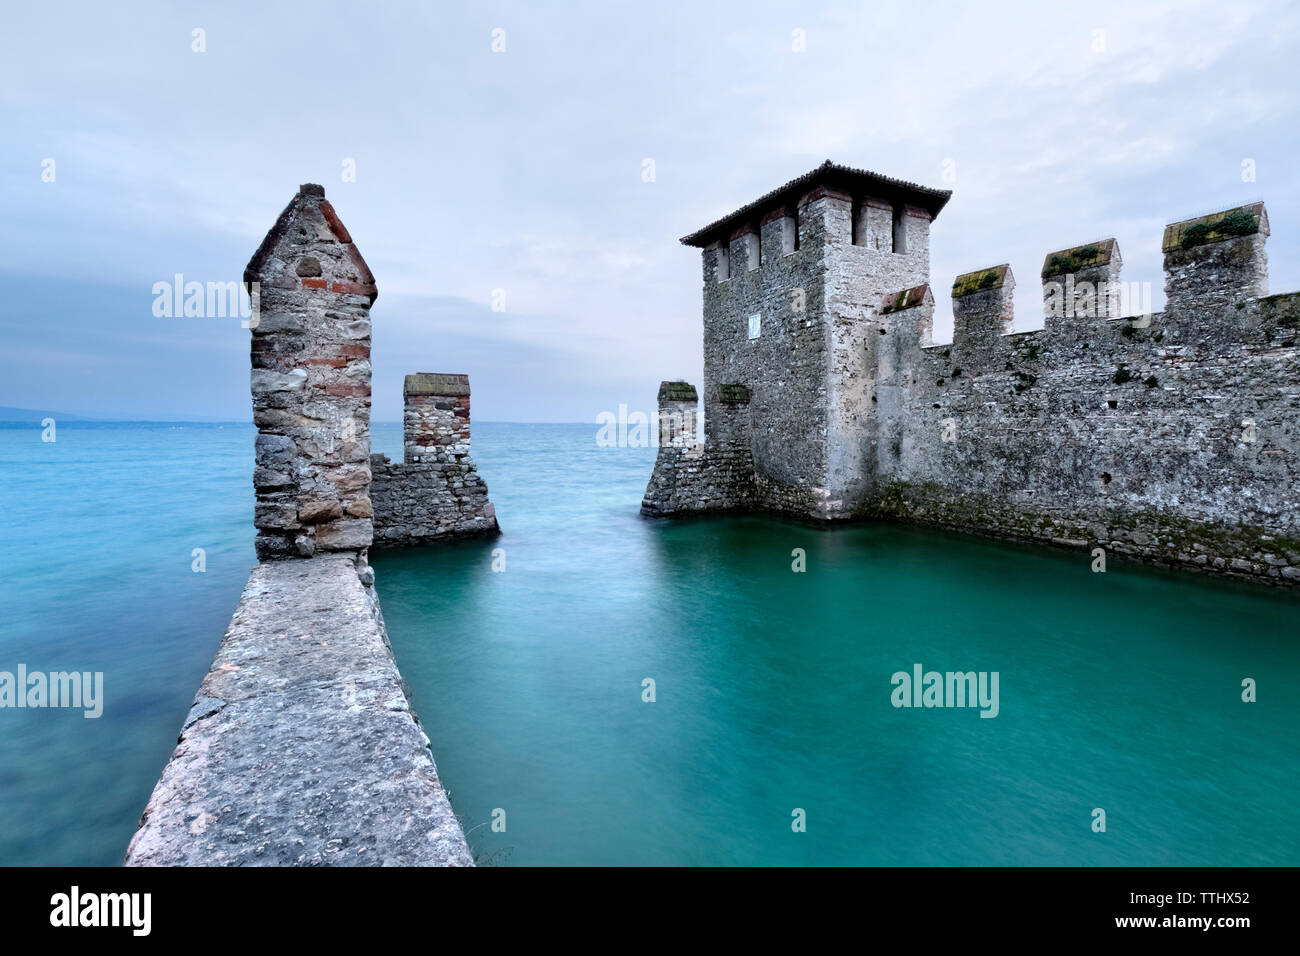 A tower of the Scaligero castle overlook the Lake Garda. Sirmione, Lombardy, Italy, Europe. Stock Photo